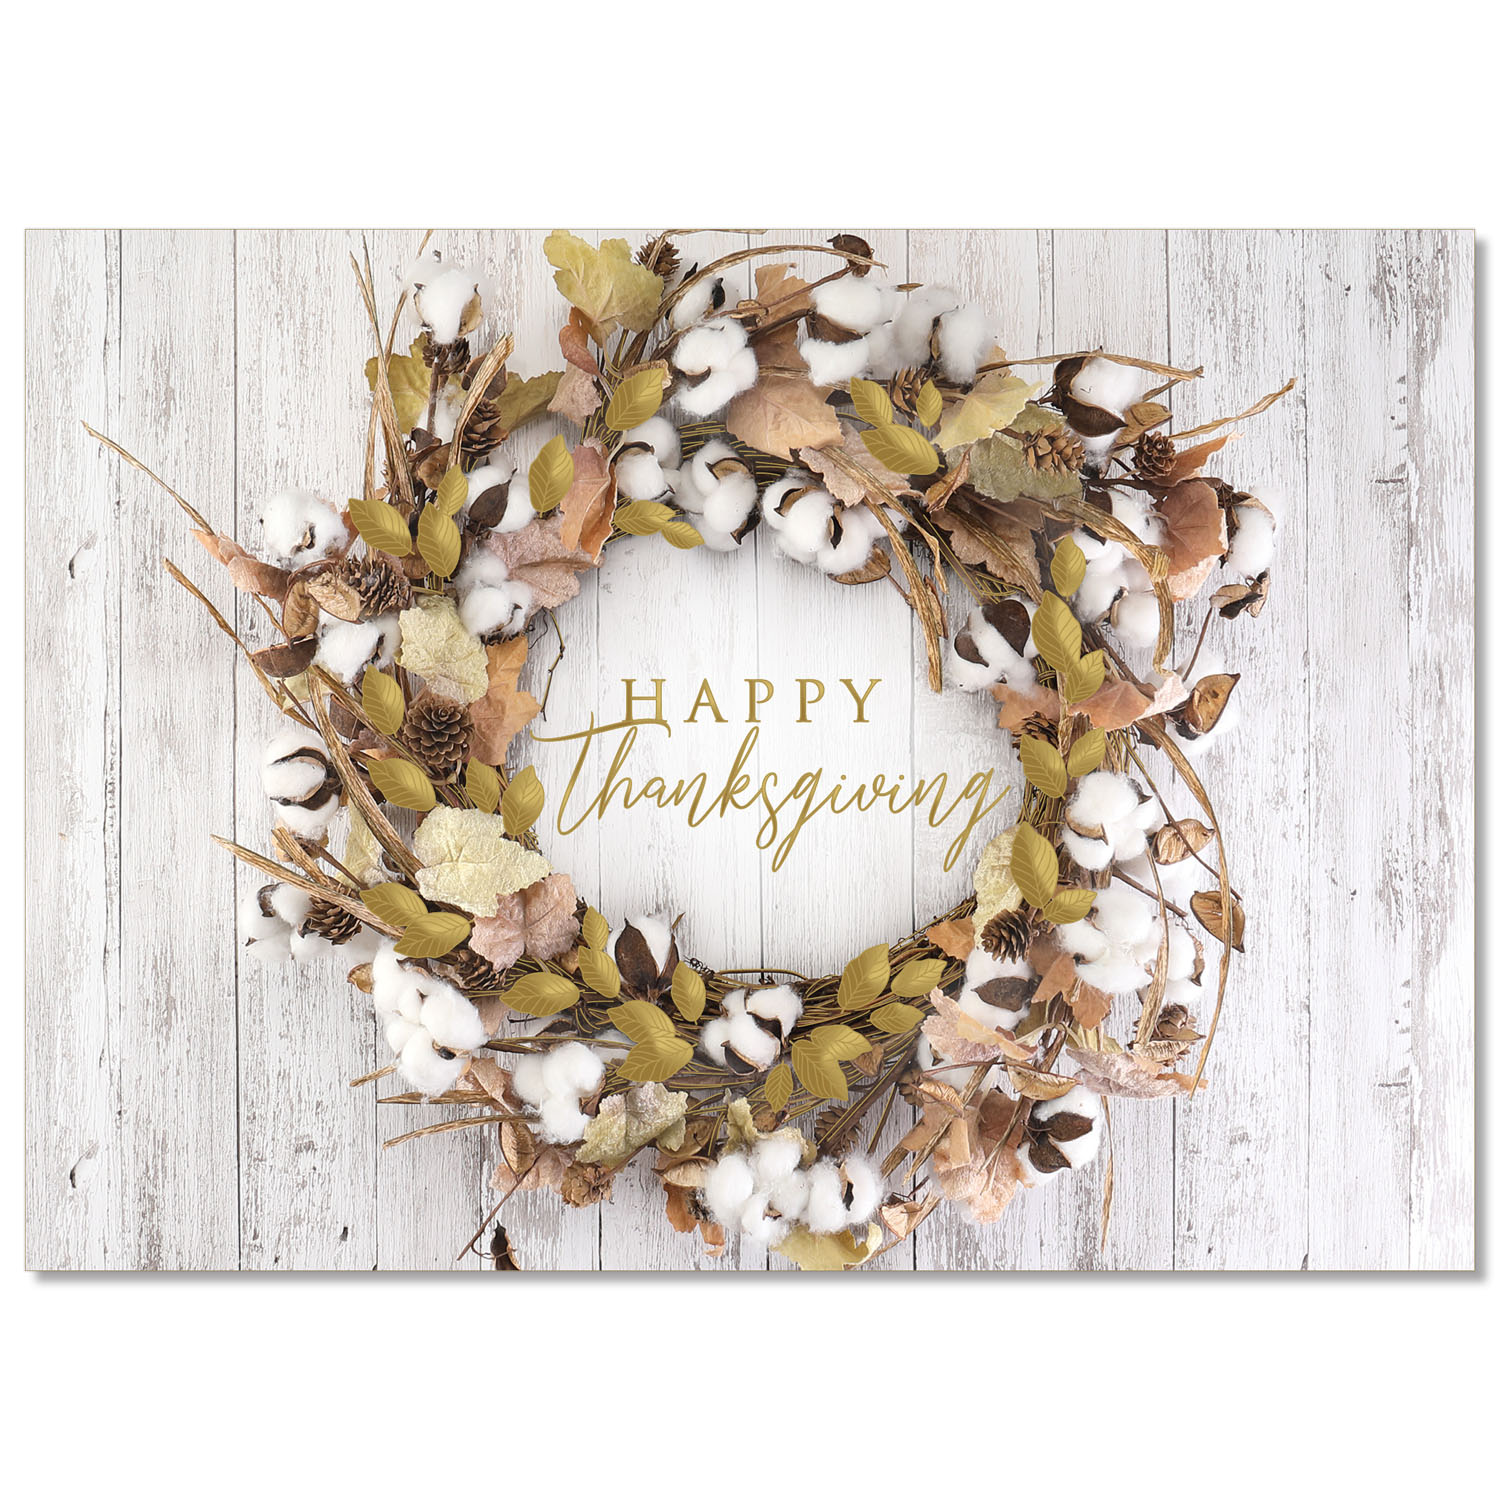 Rustic Thanksgiving Wreath Holiday Card